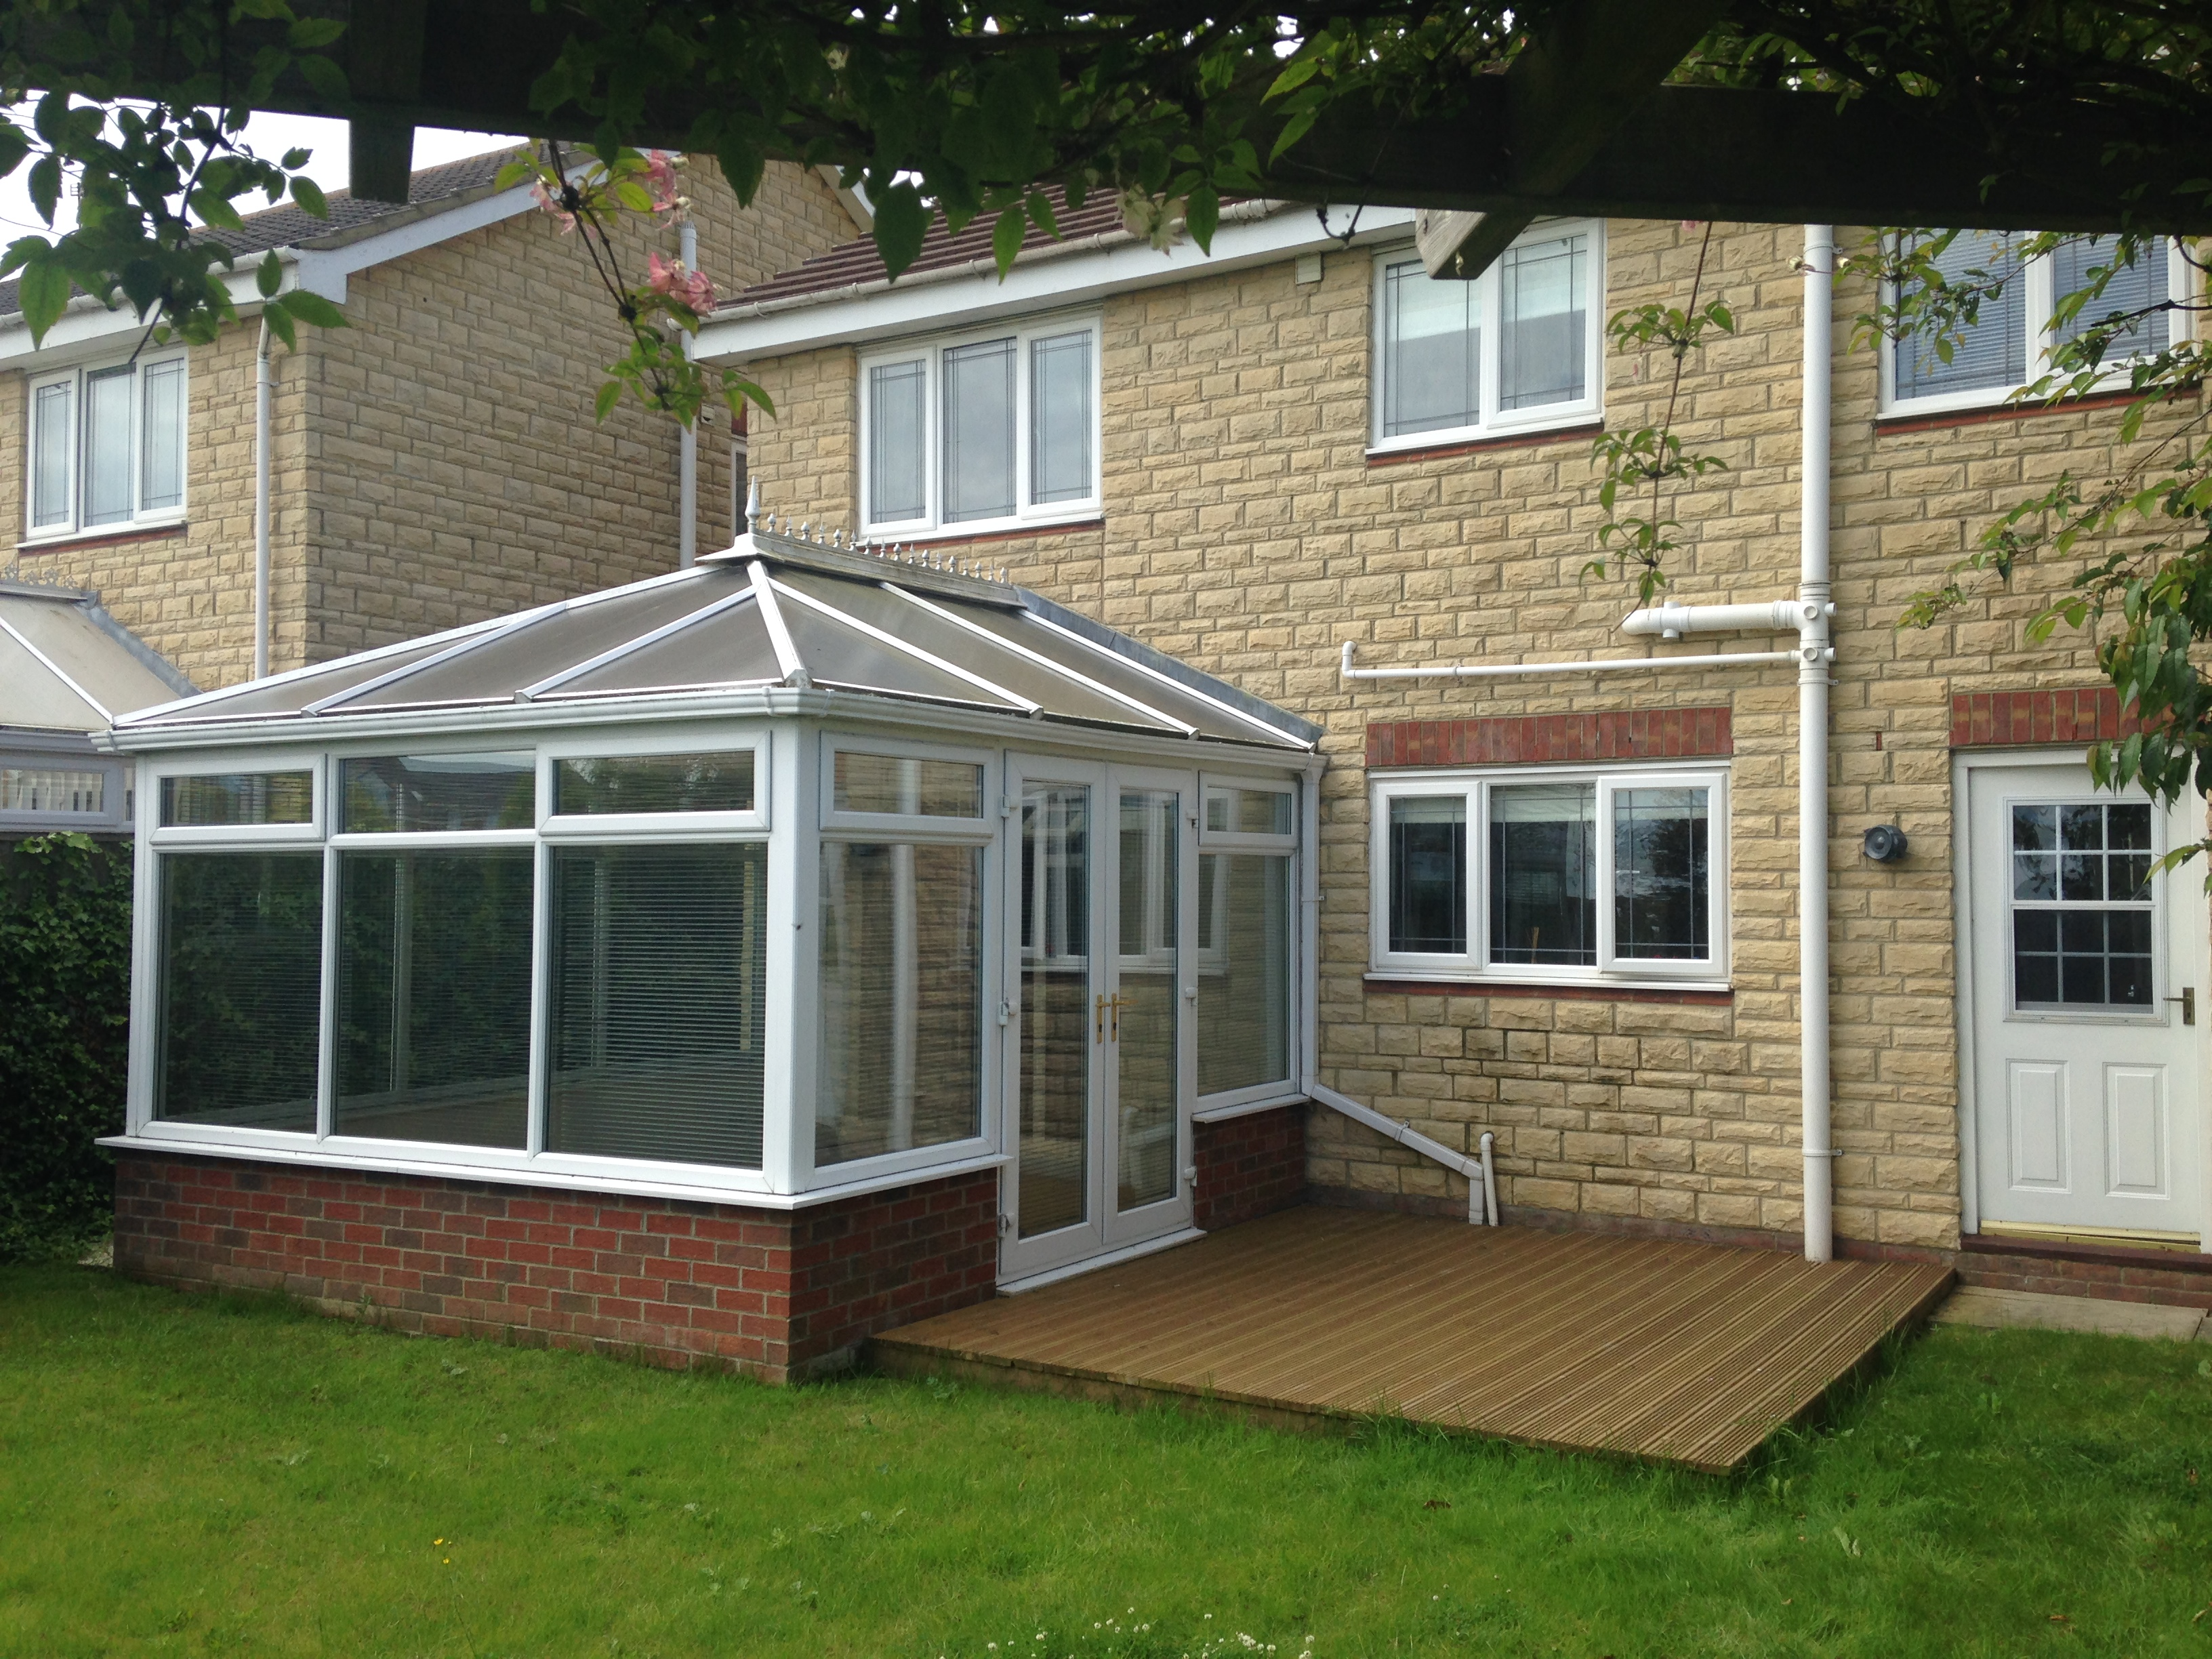 Garden room extension blyth ads architectural for Ad garden rooms